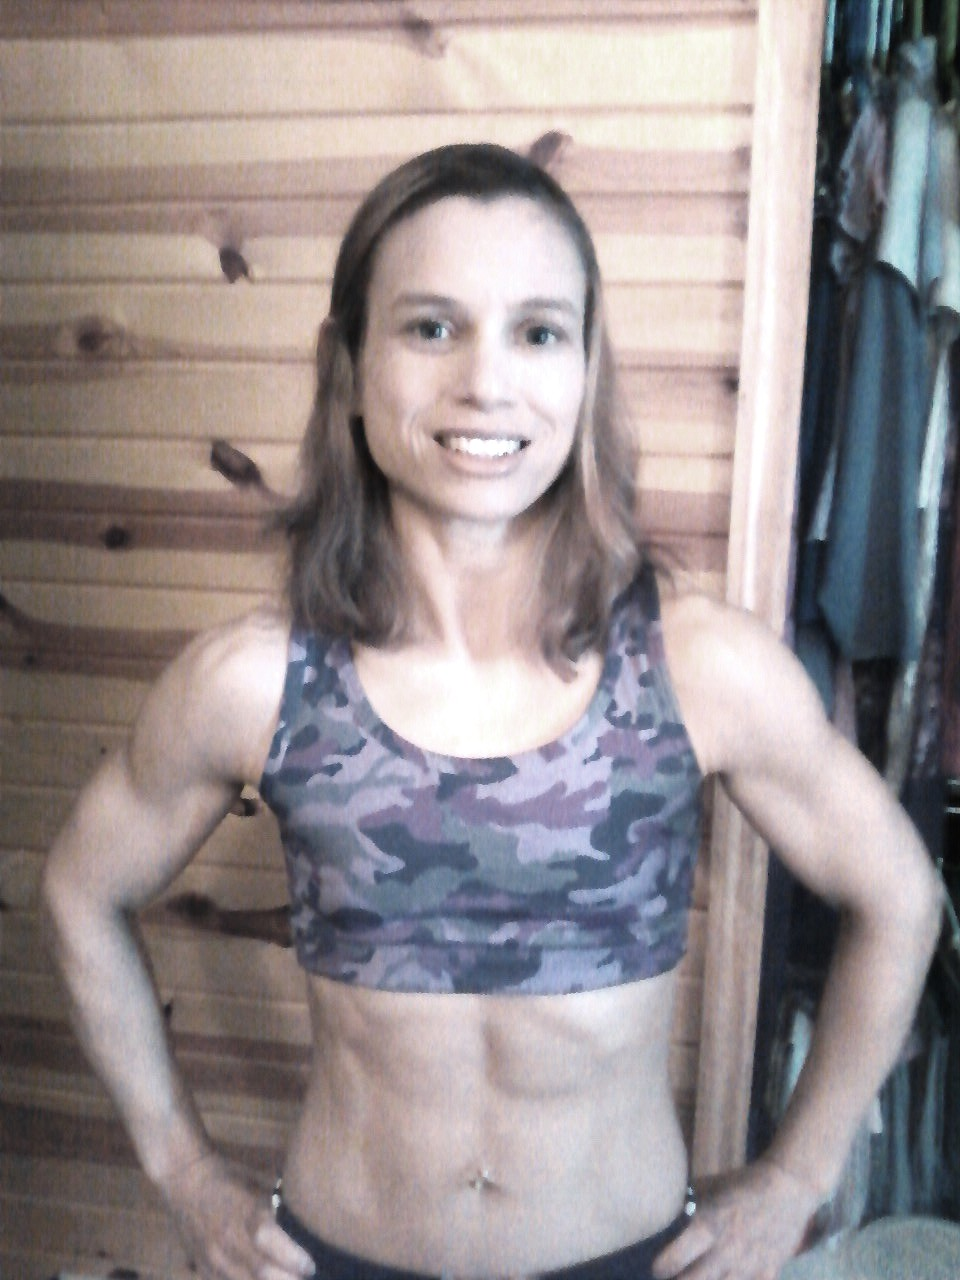 Irene after Armageddon Weight Loss - Get your six pack abs without drugs or supplements!